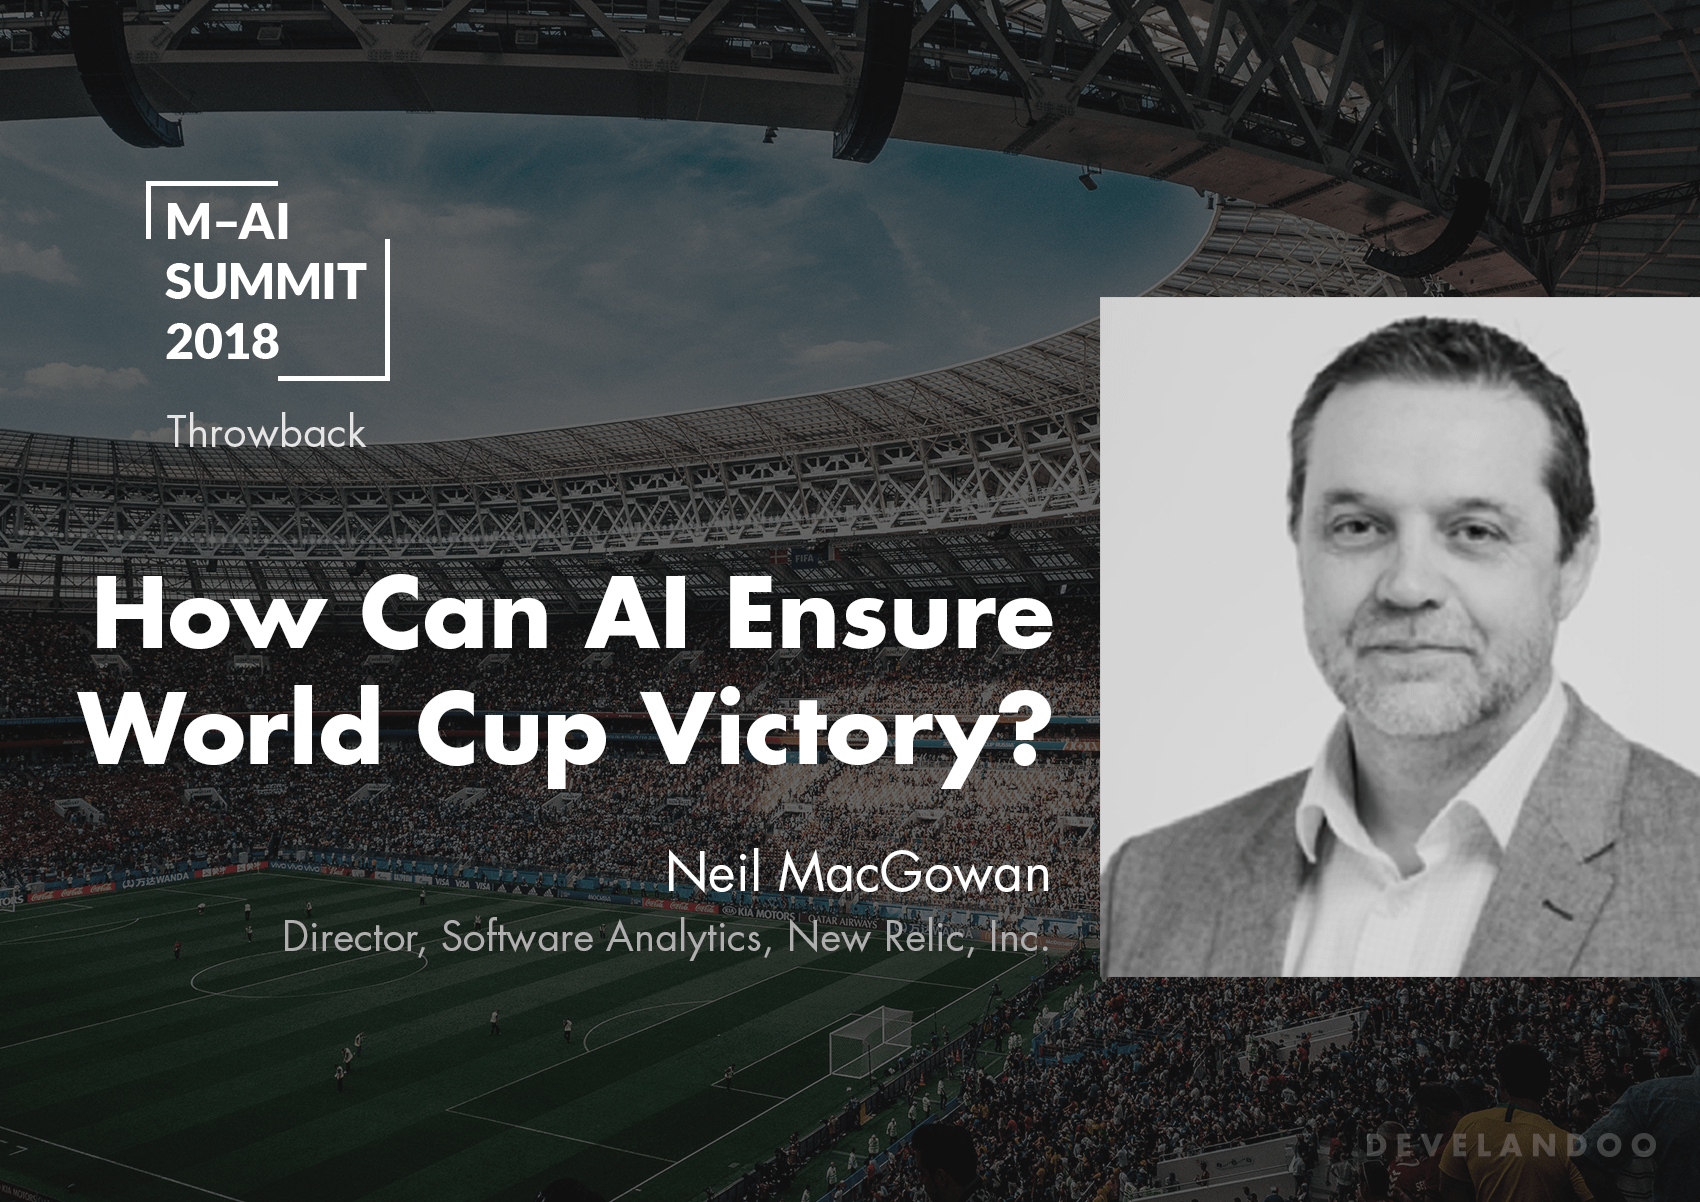 Even FIFA Goes Digital. Neil Macgowan speaks about the success of World Cup big business through Artificial Intelligence